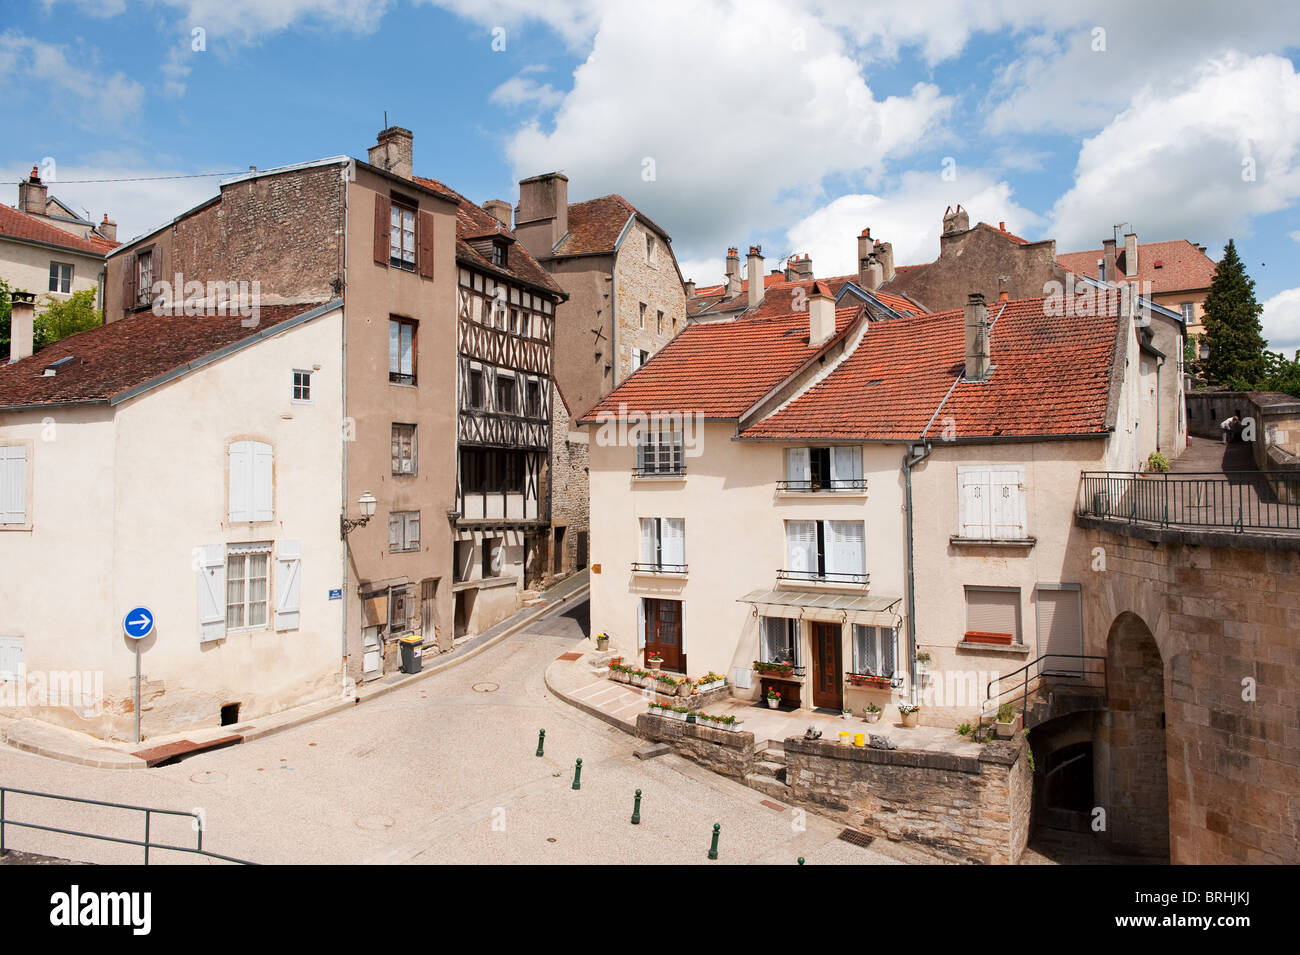 street scene in the old french village langres stock photo 31735302 alamy. Black Bedroom Furniture Sets. Home Design Ideas